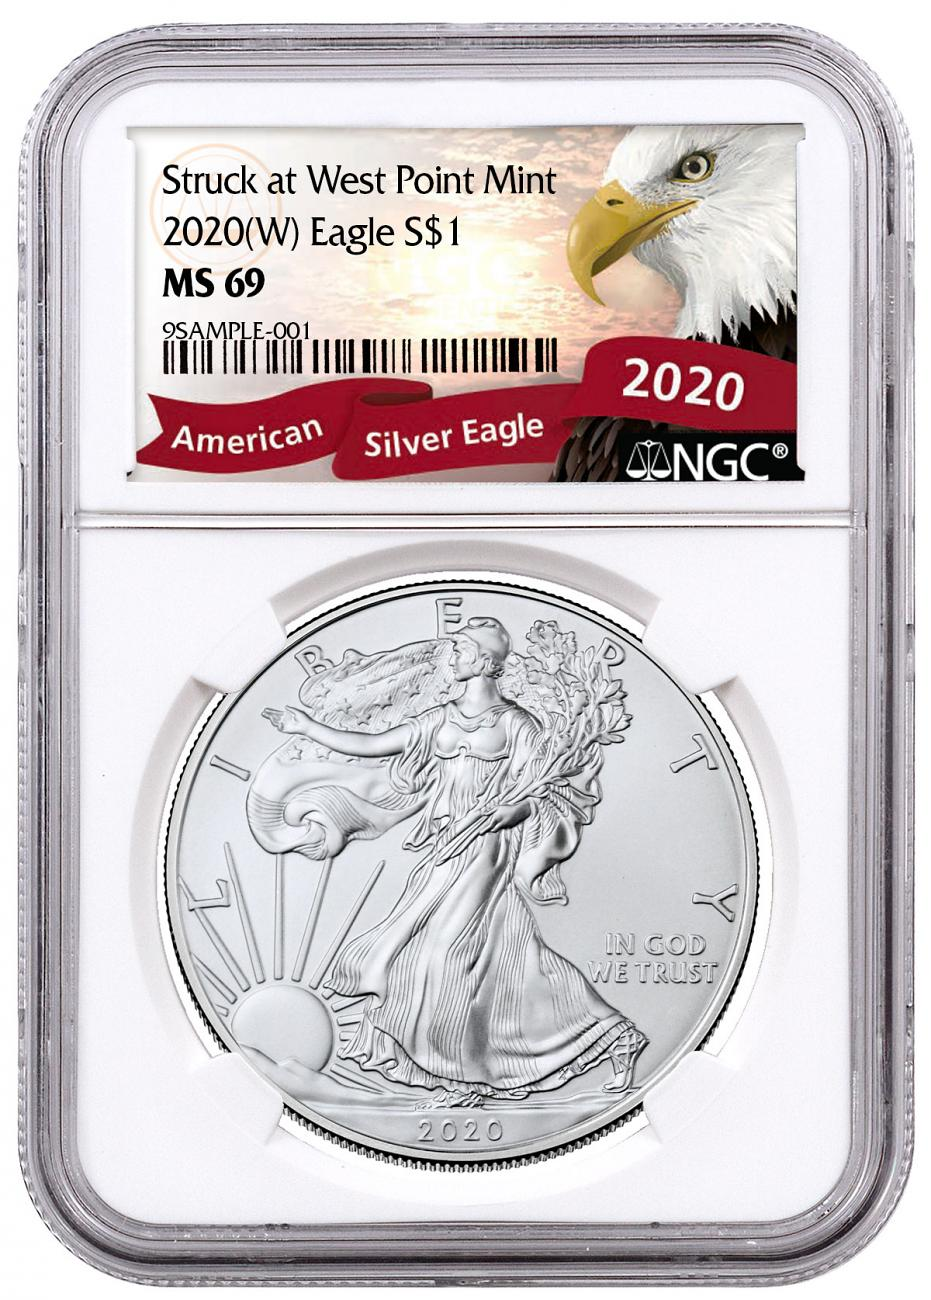 2020-(W) 1 oz Silver American Eagle Struck at West Point Mint NGC MS69 Exclusive Eagle Label